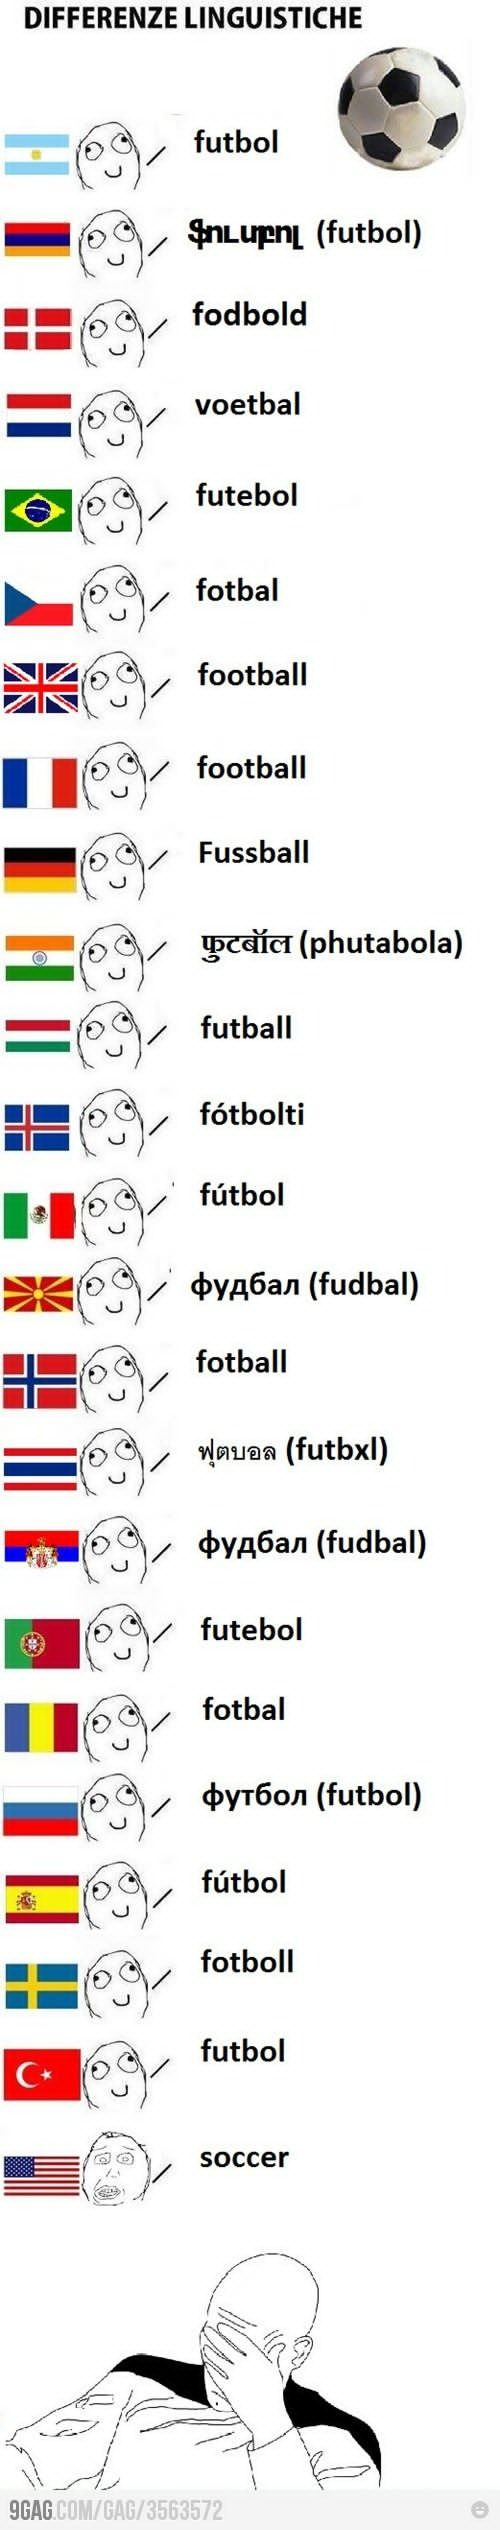 Football in 24 Languages #Infographic #Football #Soccer Pinned by @JaredRomey